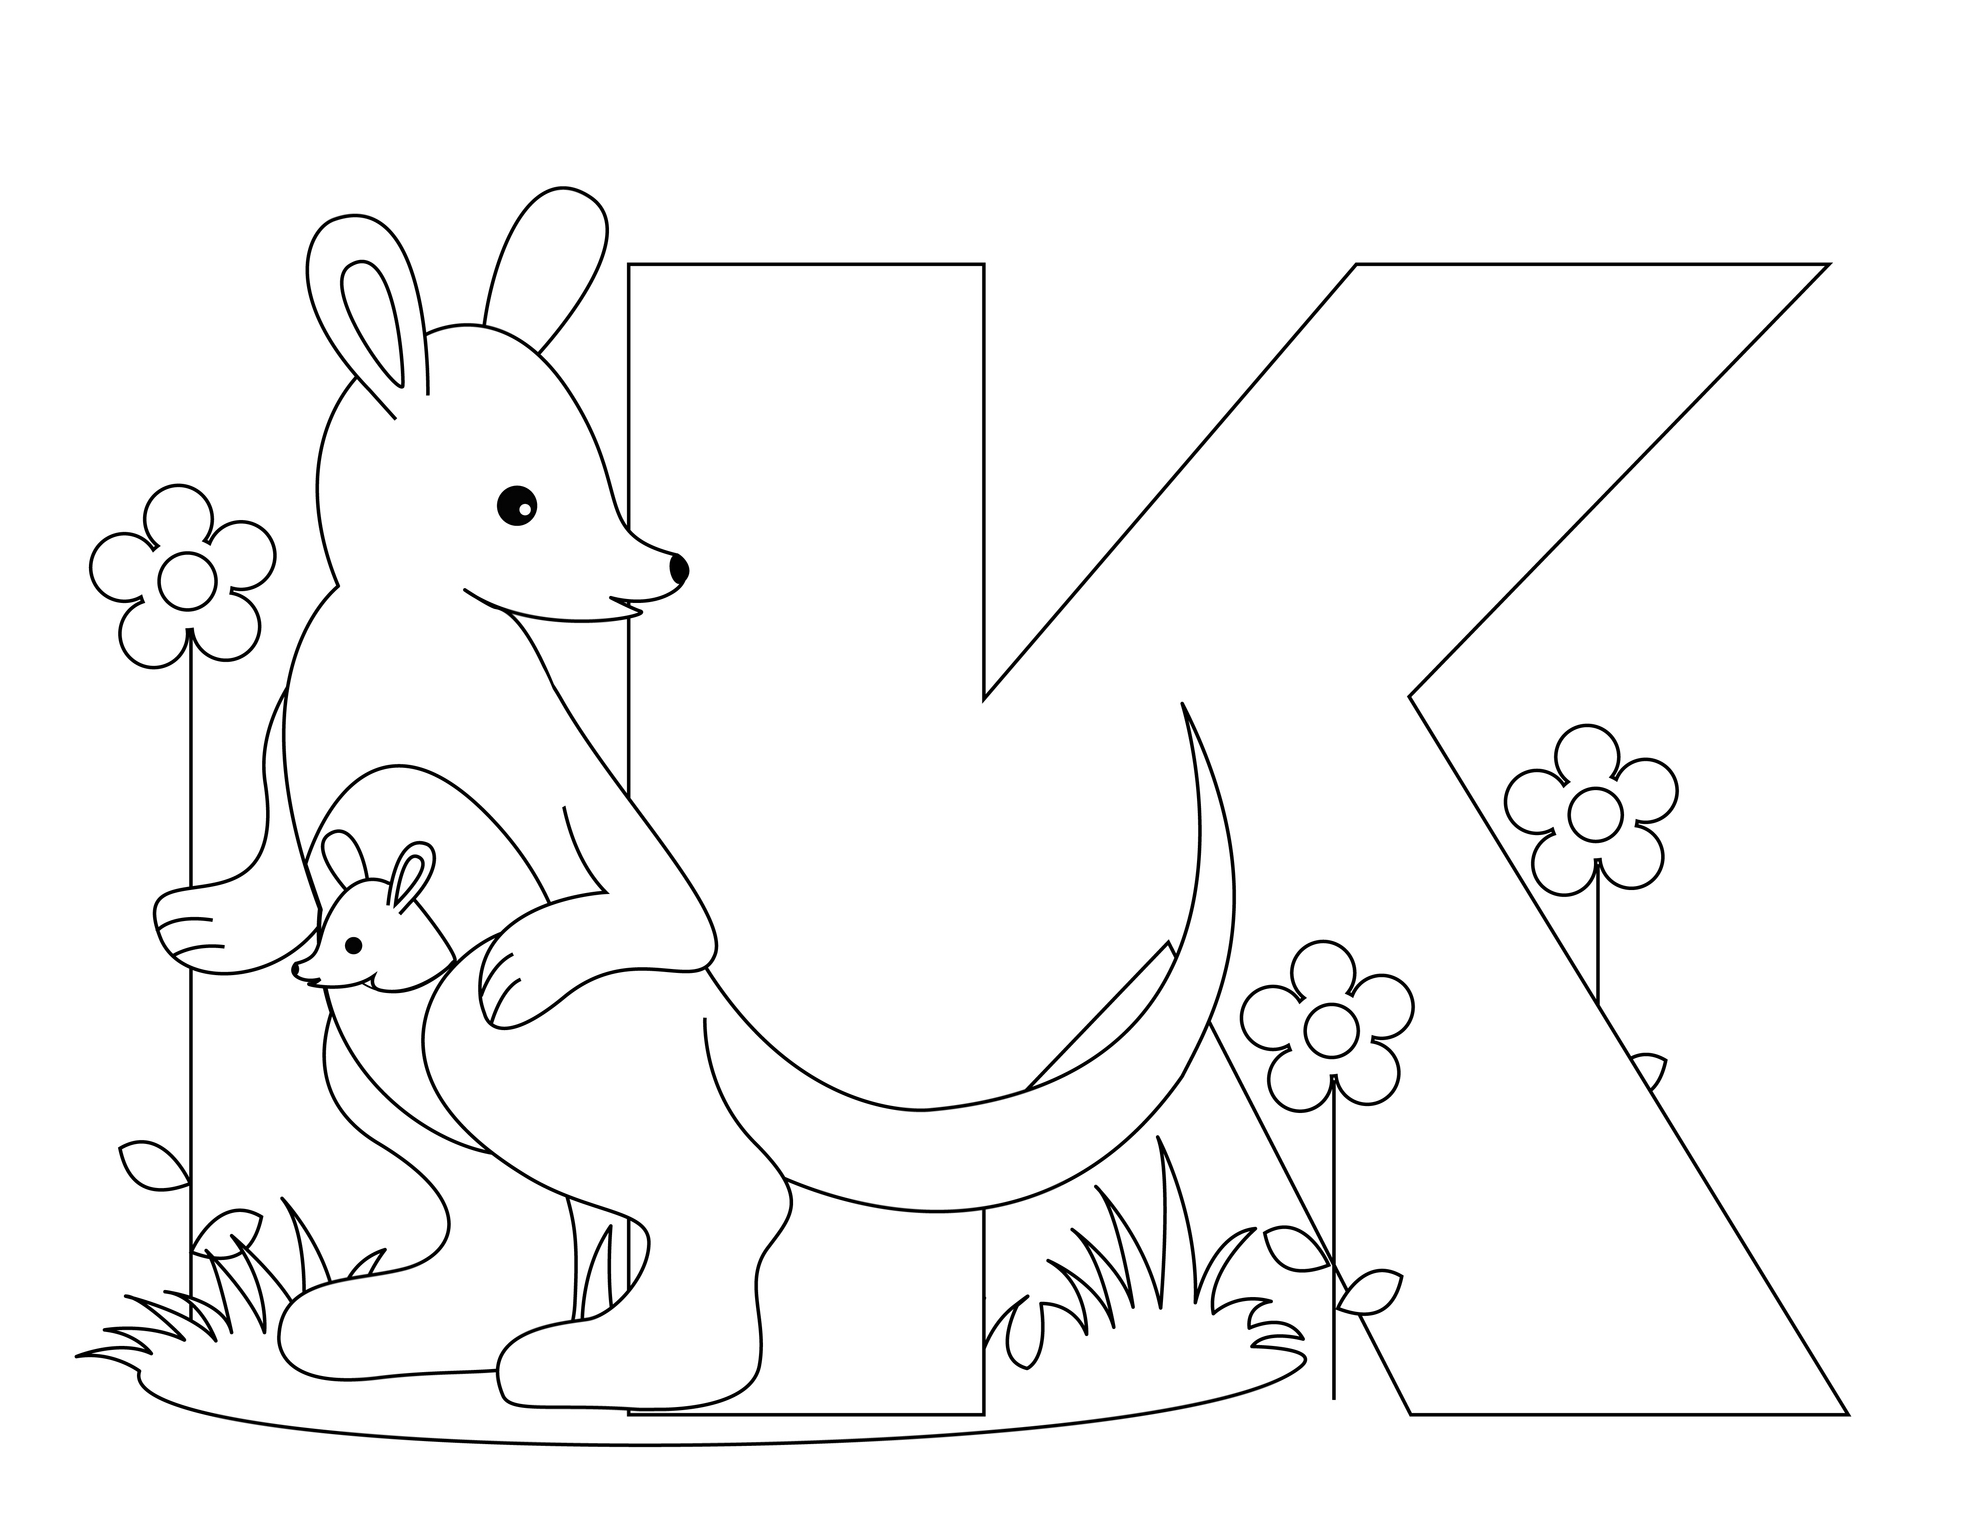 coloring pages abc - letter k coloring pages to download and print for free